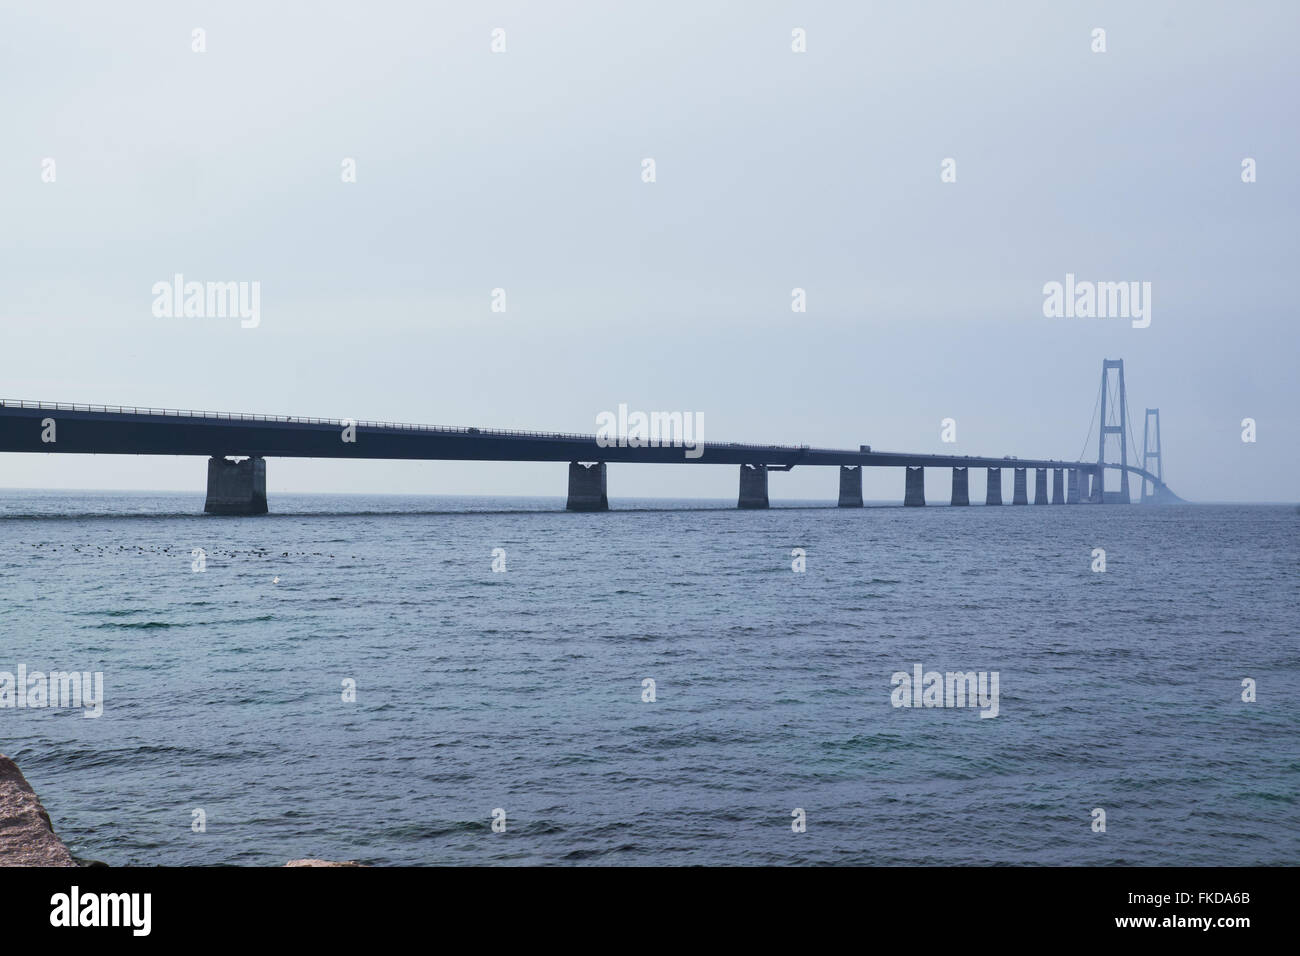 North side of the Great belt bridge seen from the Sealand side - Stock Image